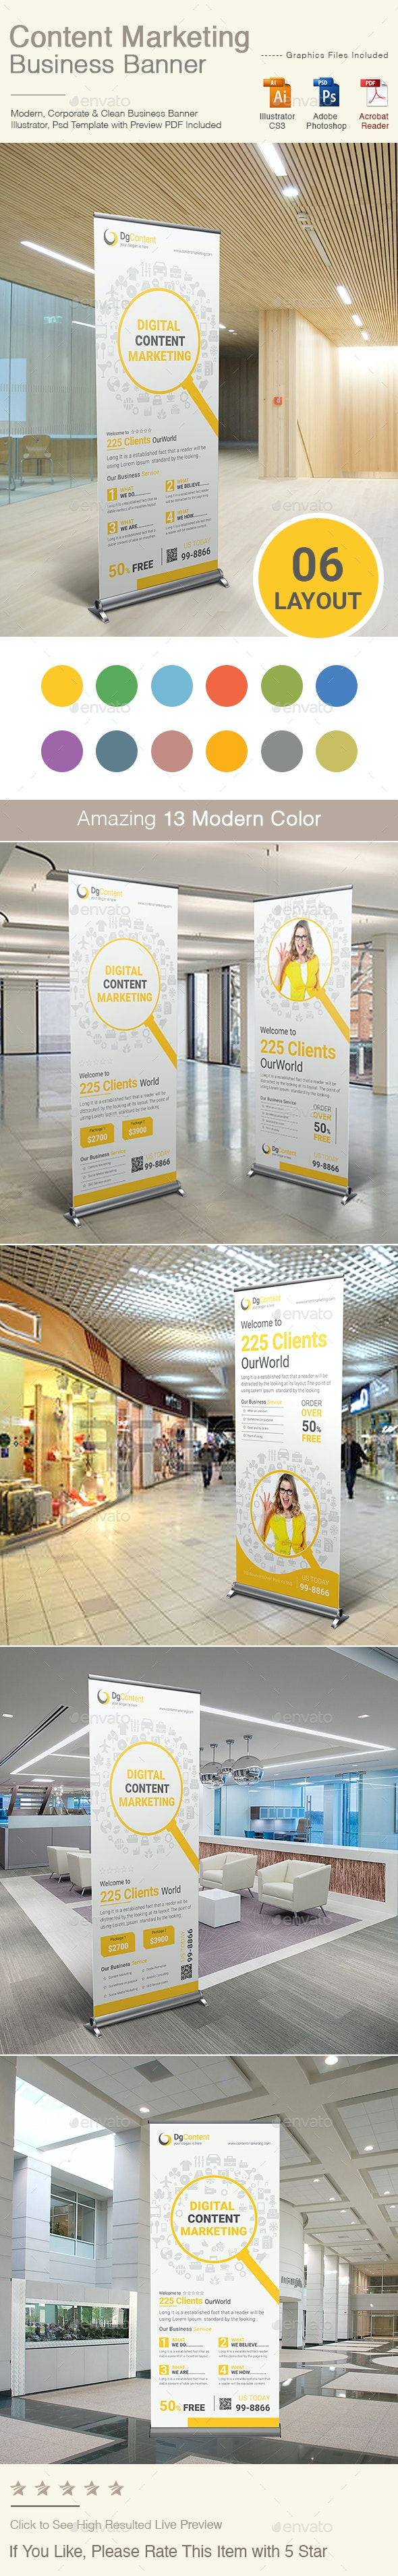 Content Marketing Banner - Signage Print Templates